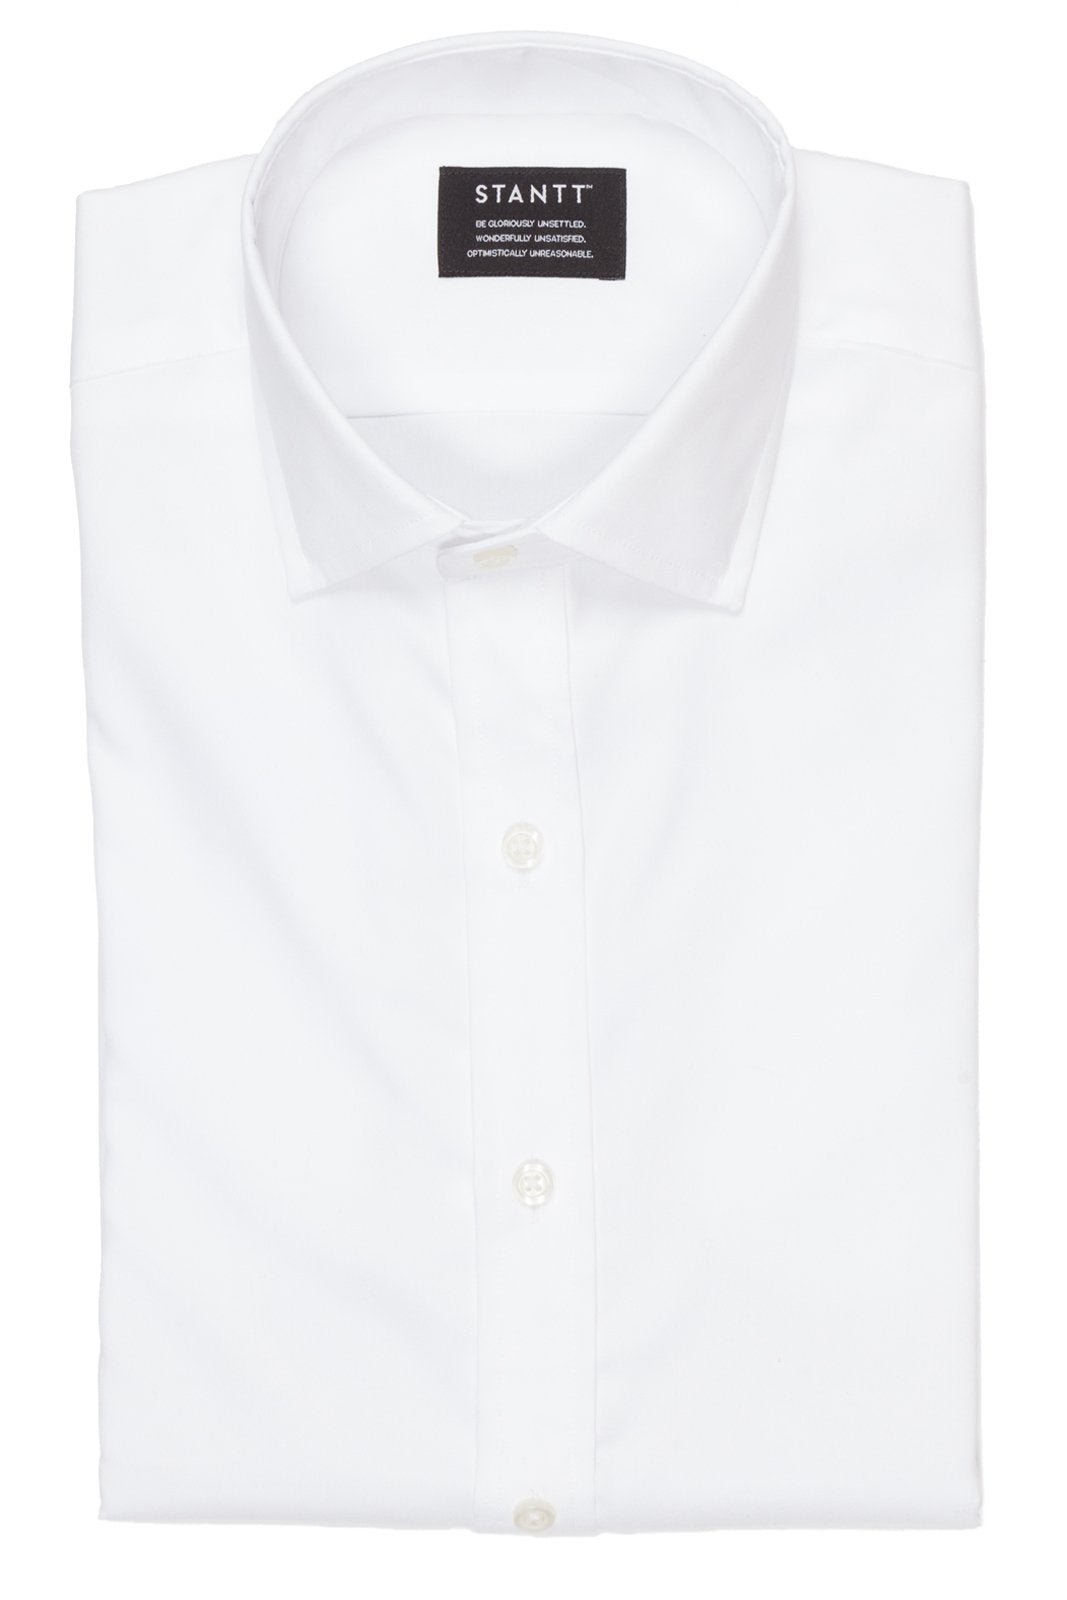 White Pinpoint Oxford: Modified-Spread Collar, French Cuff